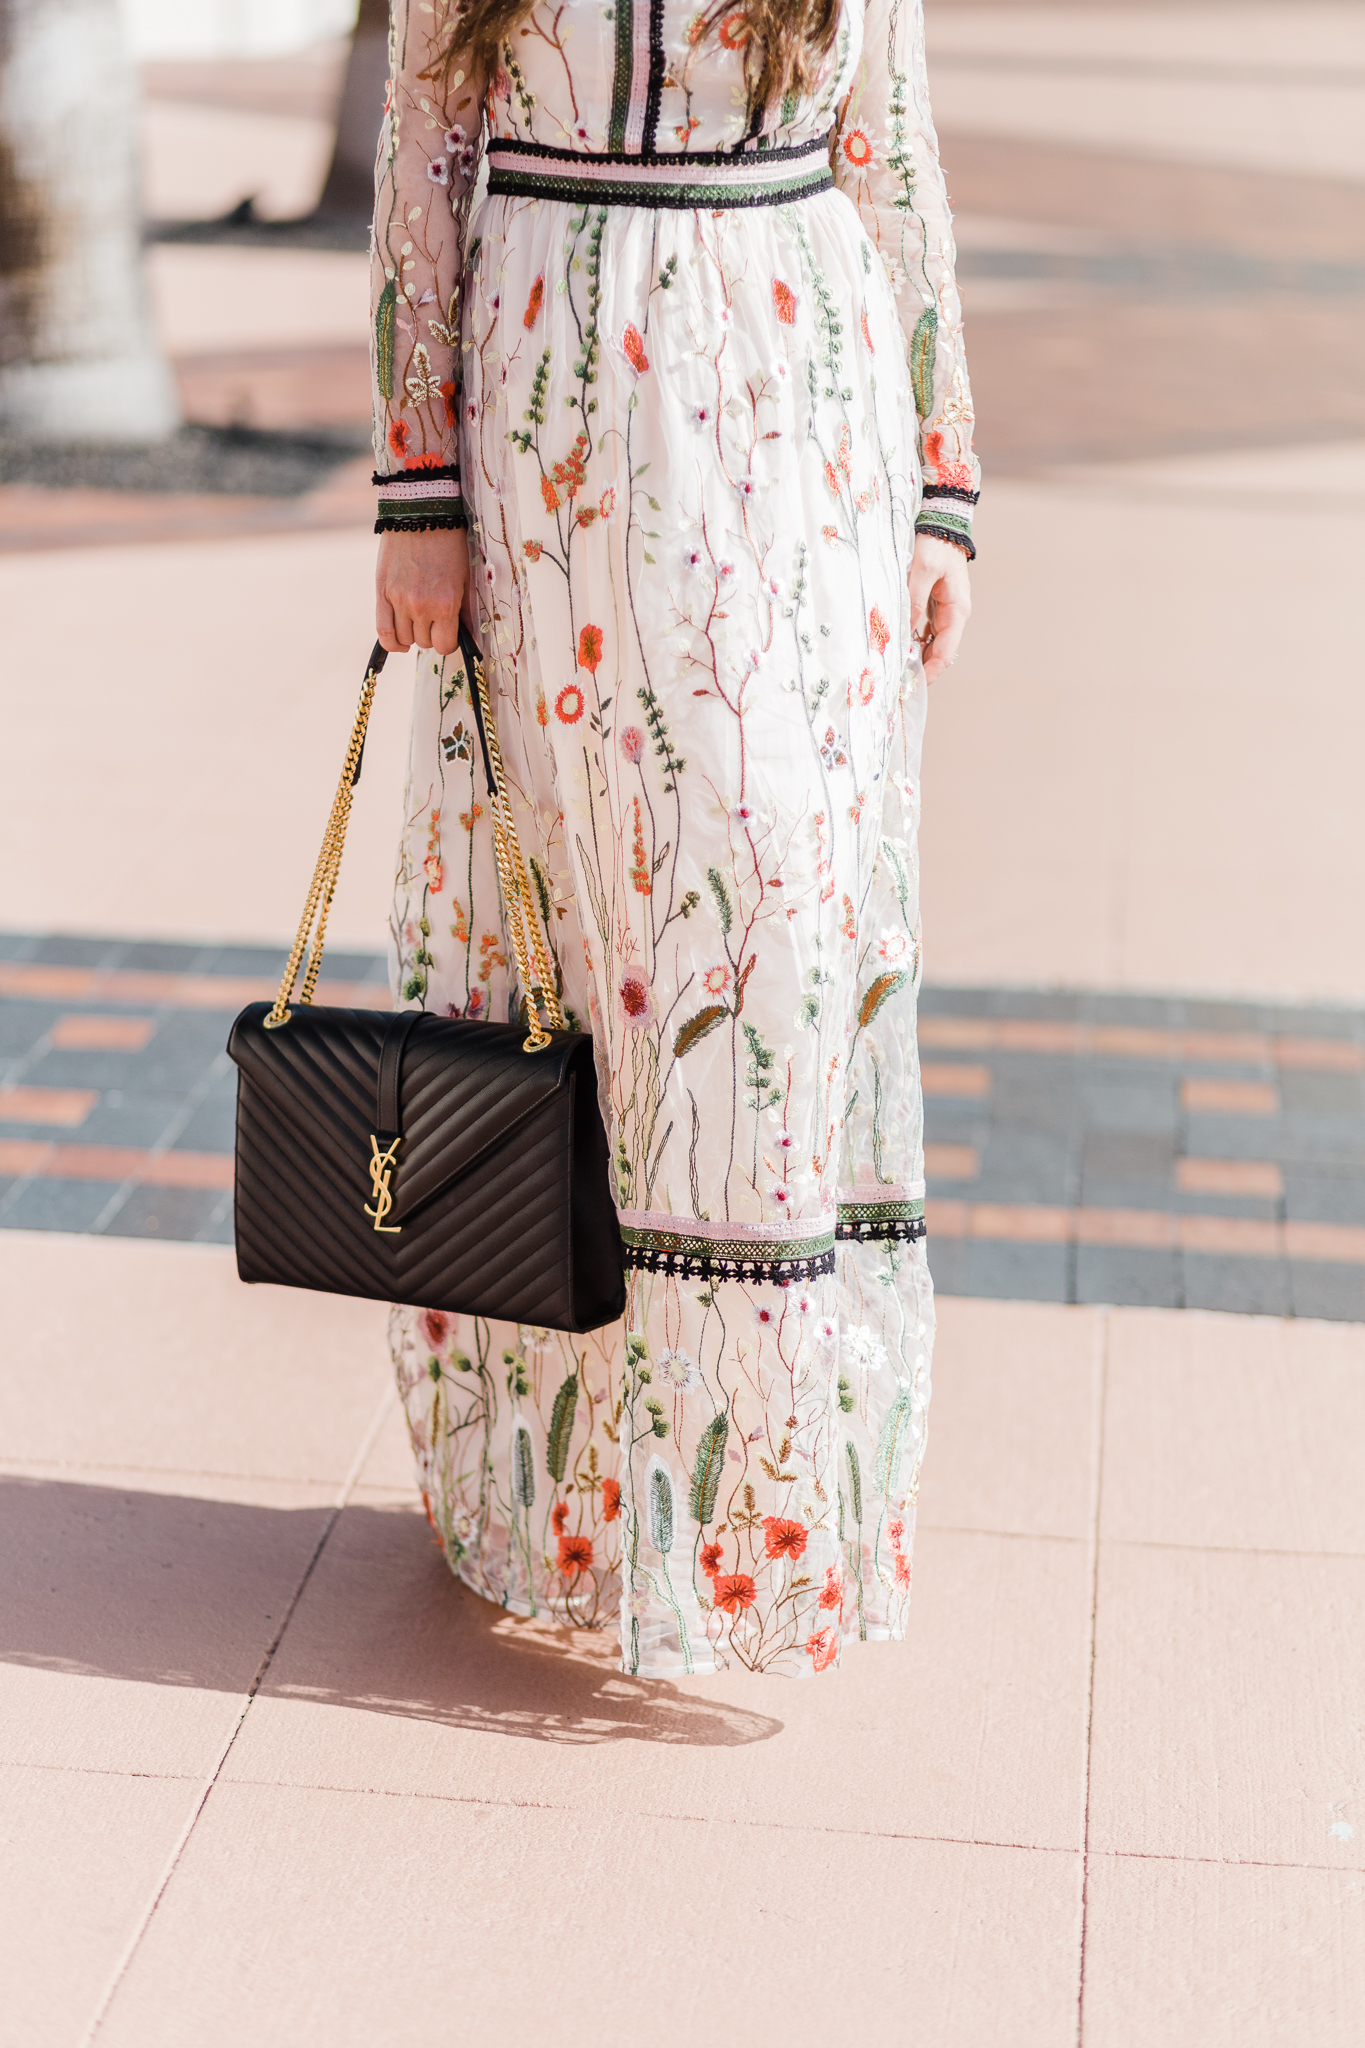 What to wear to a Fall or Winter wedding| fall dress, wedding guest dress, maxi dress, miss Selfridge embroidered maxi dress, saint laurent bag, saint laurent large monogram shoulder bag, what to wear, christinabtv, embroidered dress, fall wedding